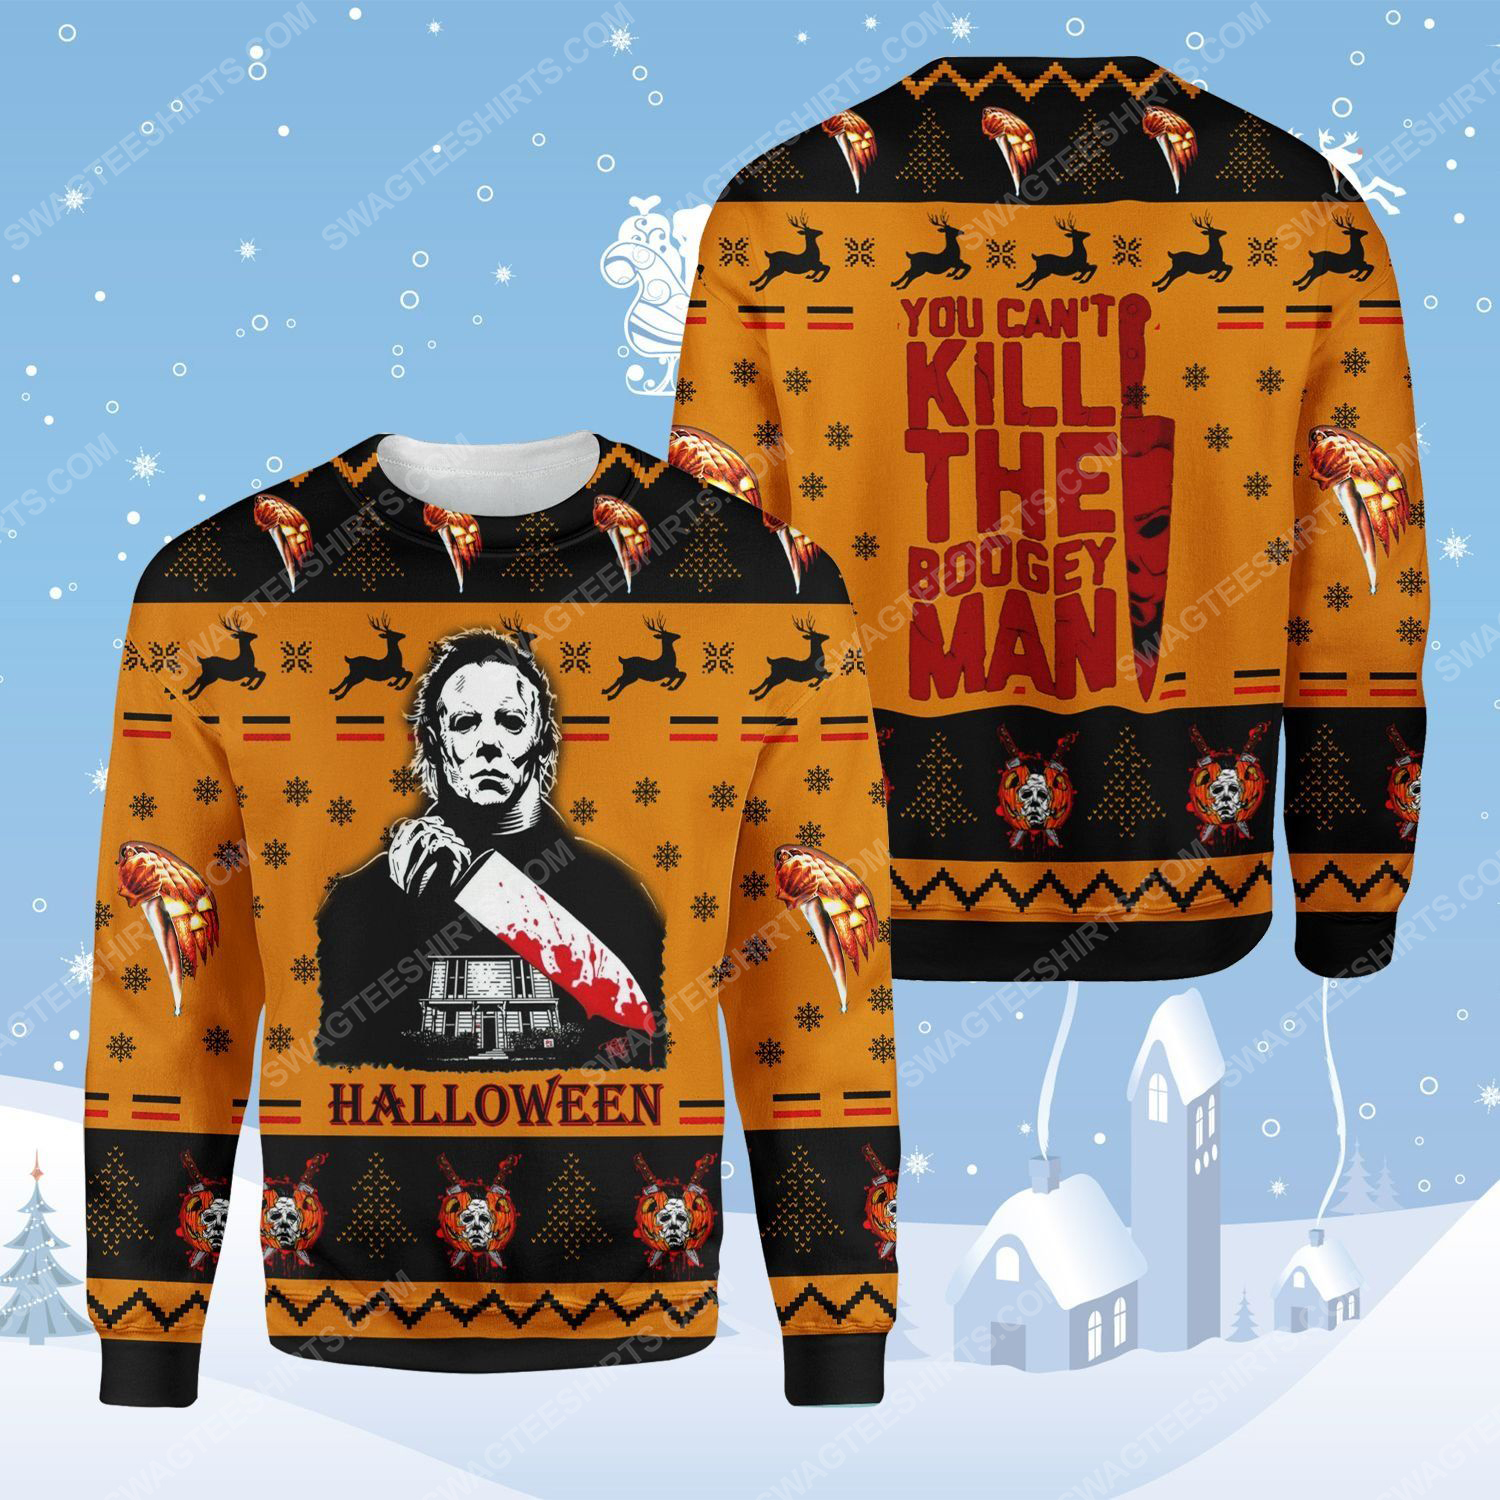 Halloween michael myers you can't kill the boogeyman ugly christmas sweater